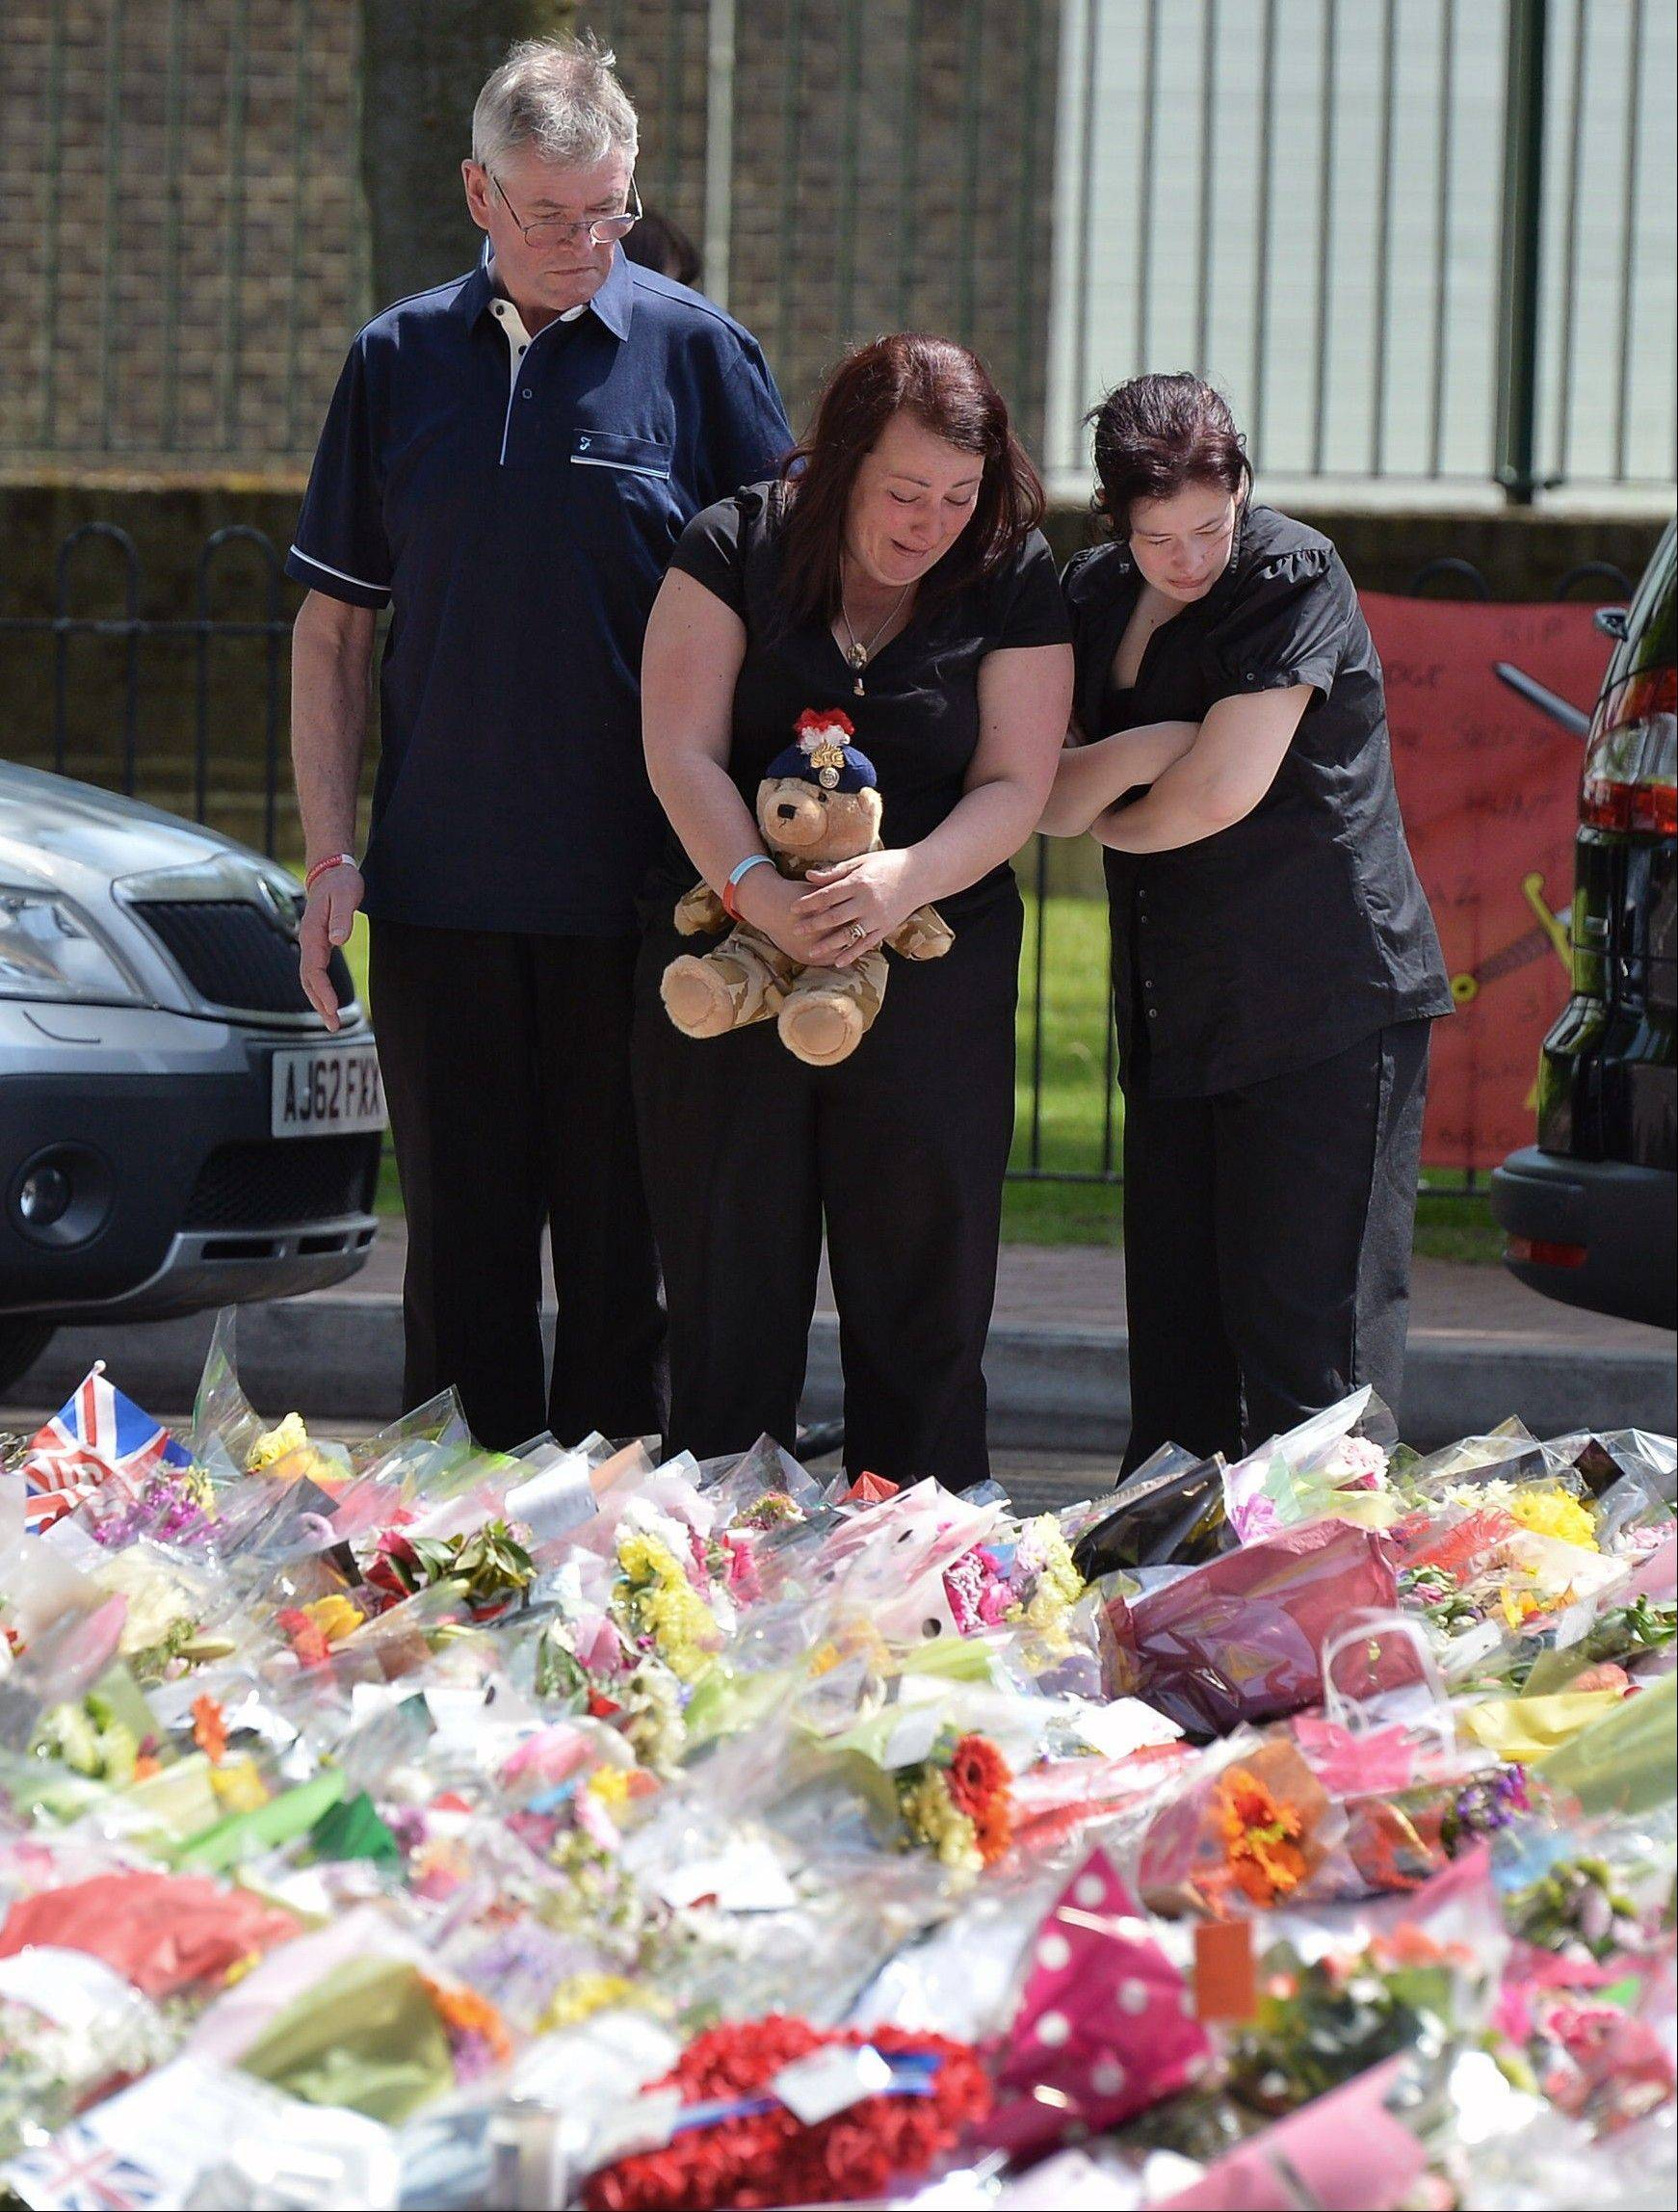 The mother of killed Drummer Lee Rigby, Lyn Rigby, centre, holds onto a teddy bear as she joins his stepfather Ian, and other family members looking at floral tributes outside Woolwich Barracks as they visited the scene of his murder in Woolwich, south-east London, Sunday May 26, 2013. Family members laid flowers at the Woolwich Barracks where the 25-year-old soldier of the Royal Regiment of Fusiliers Lee Rigby who was attacked and killed by two men in broad daylight Wednesday May 22, and where hundreds of floral tributes have been left by public well wishers.